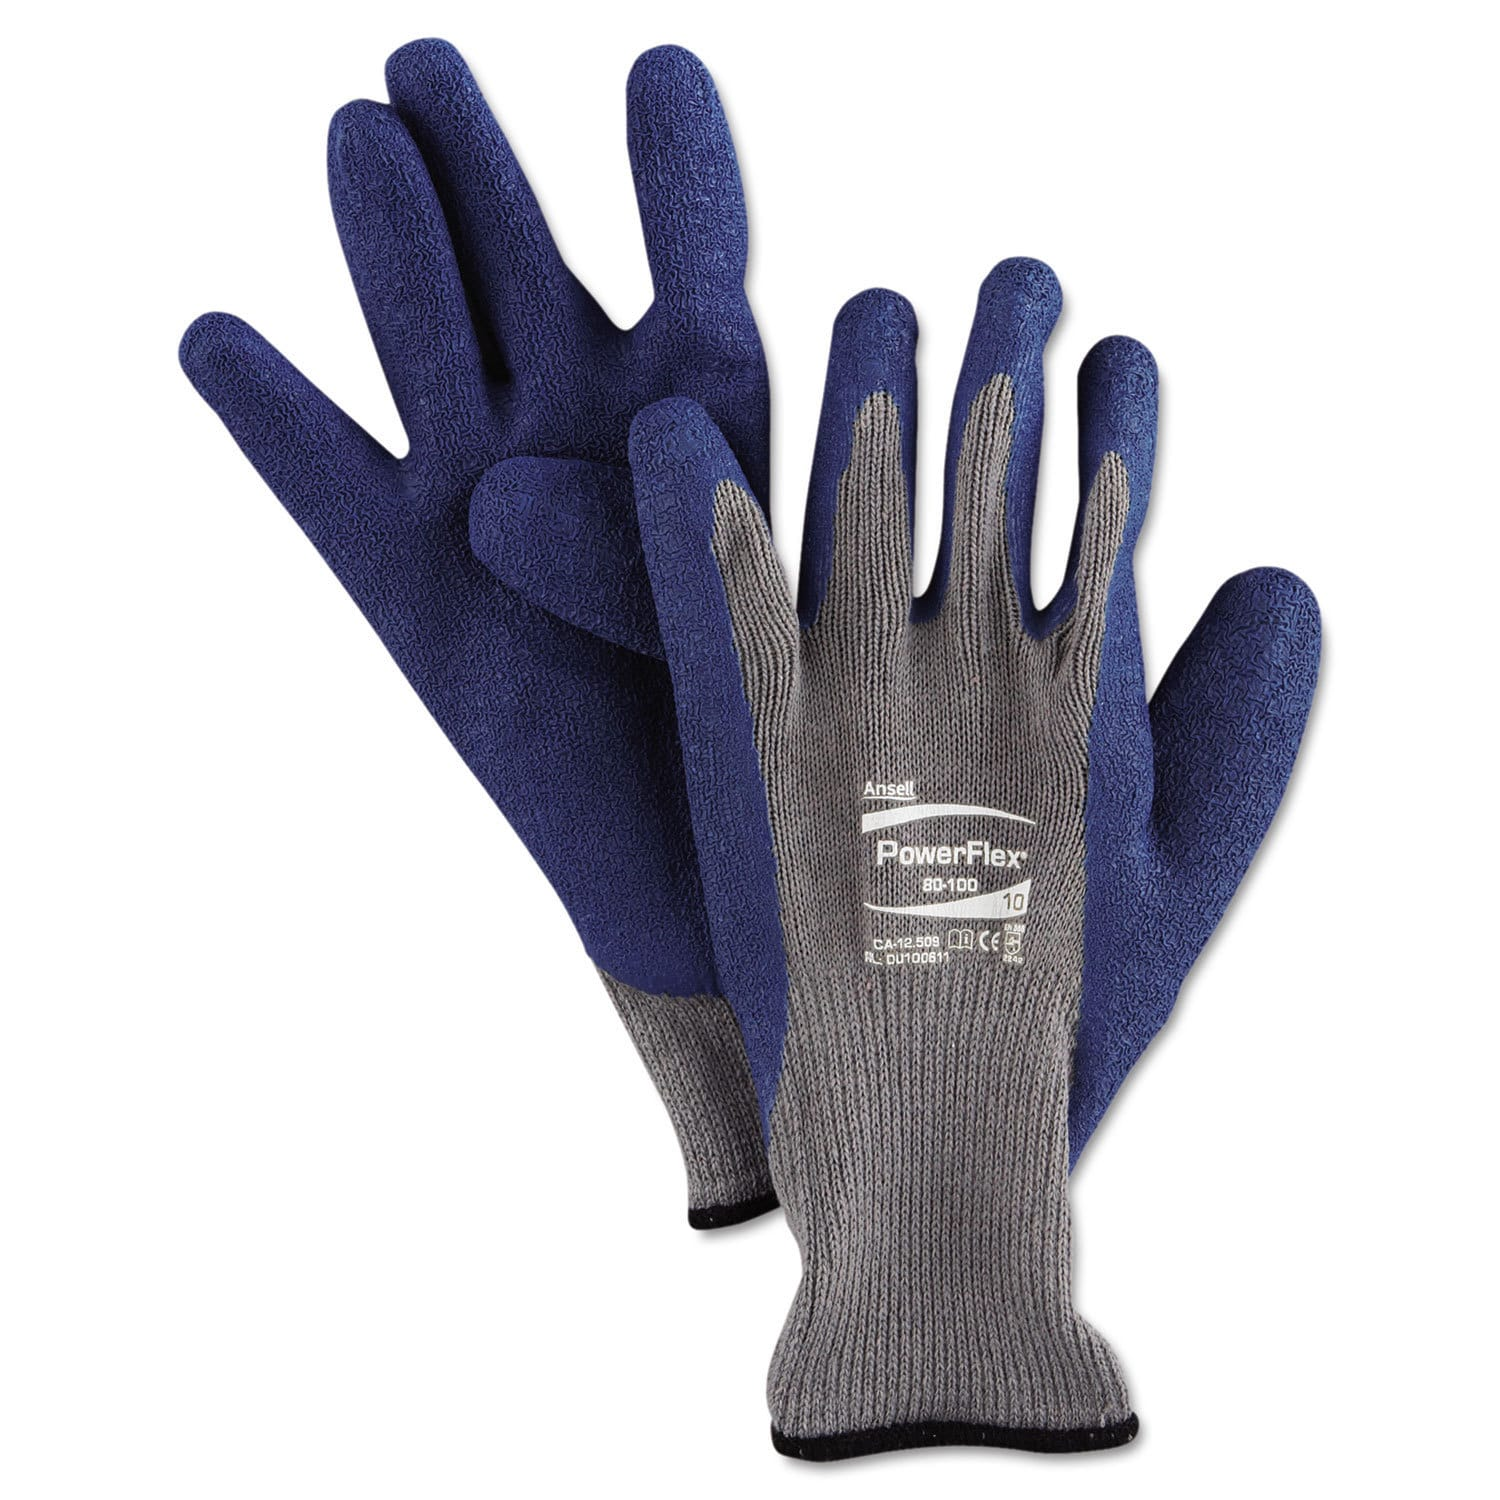 ANSELL PowerFlex Gloves Blue/Grey Size 10 12 Pairs (Blue/...